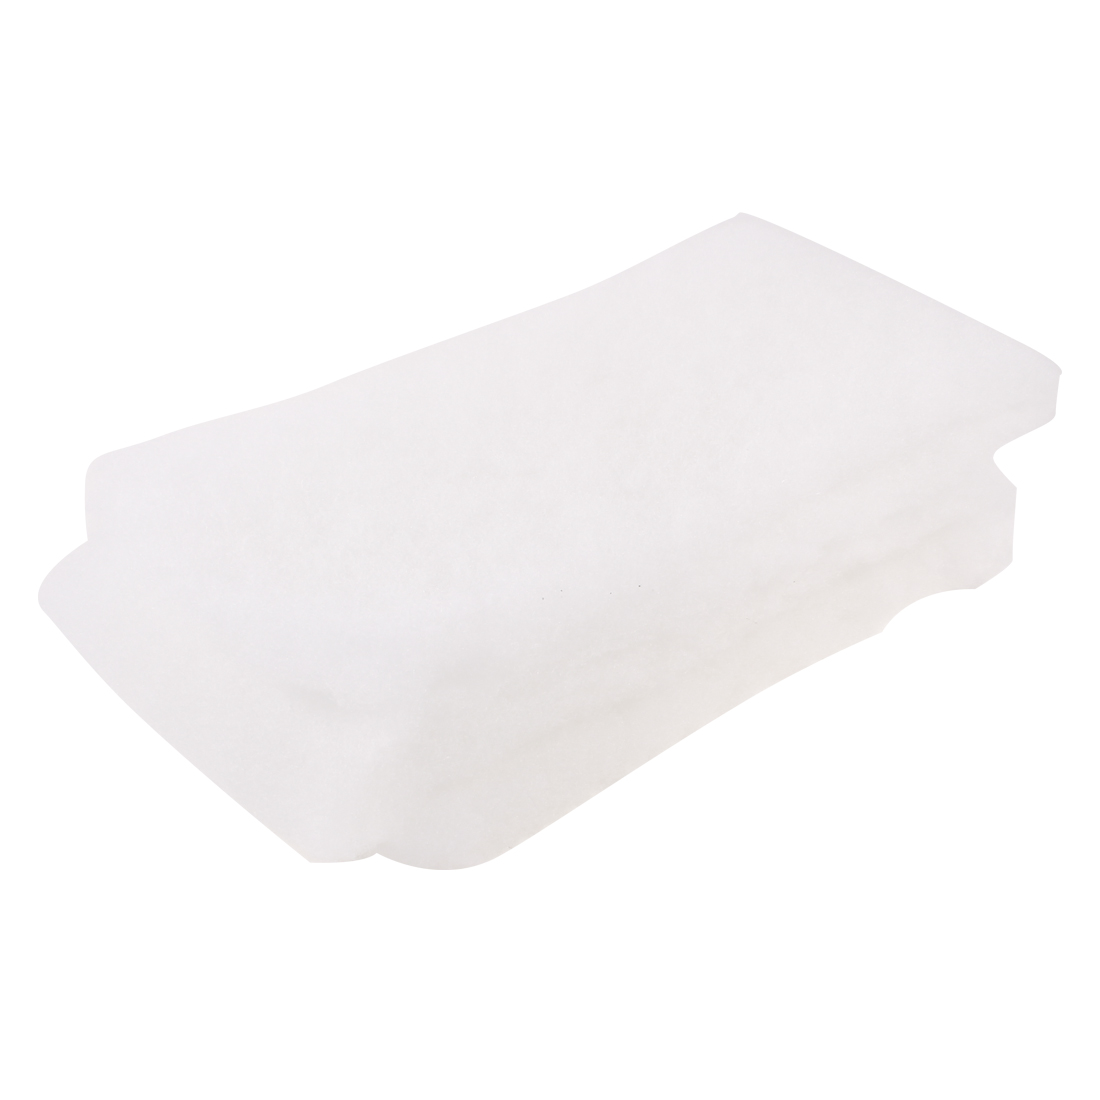 "Aquarium Spark Machine Rectangle Shape White Filter Sponge 39"" Length"